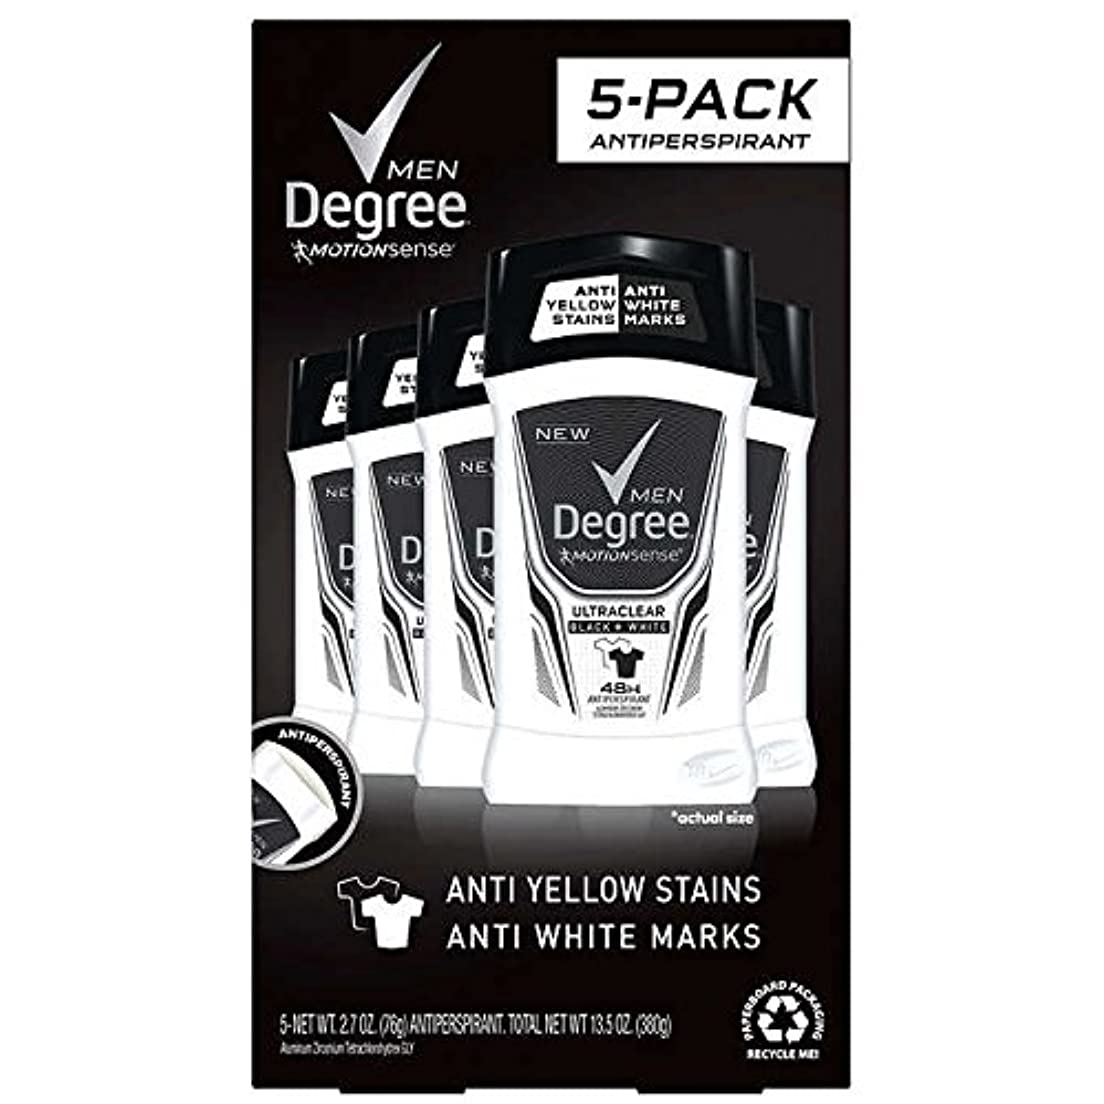 サポート騒々しい悪行Degree Men Ultra Clear Black + White Solid Deodorant 2.7oz (76g), 5-pack [並行輸入品]